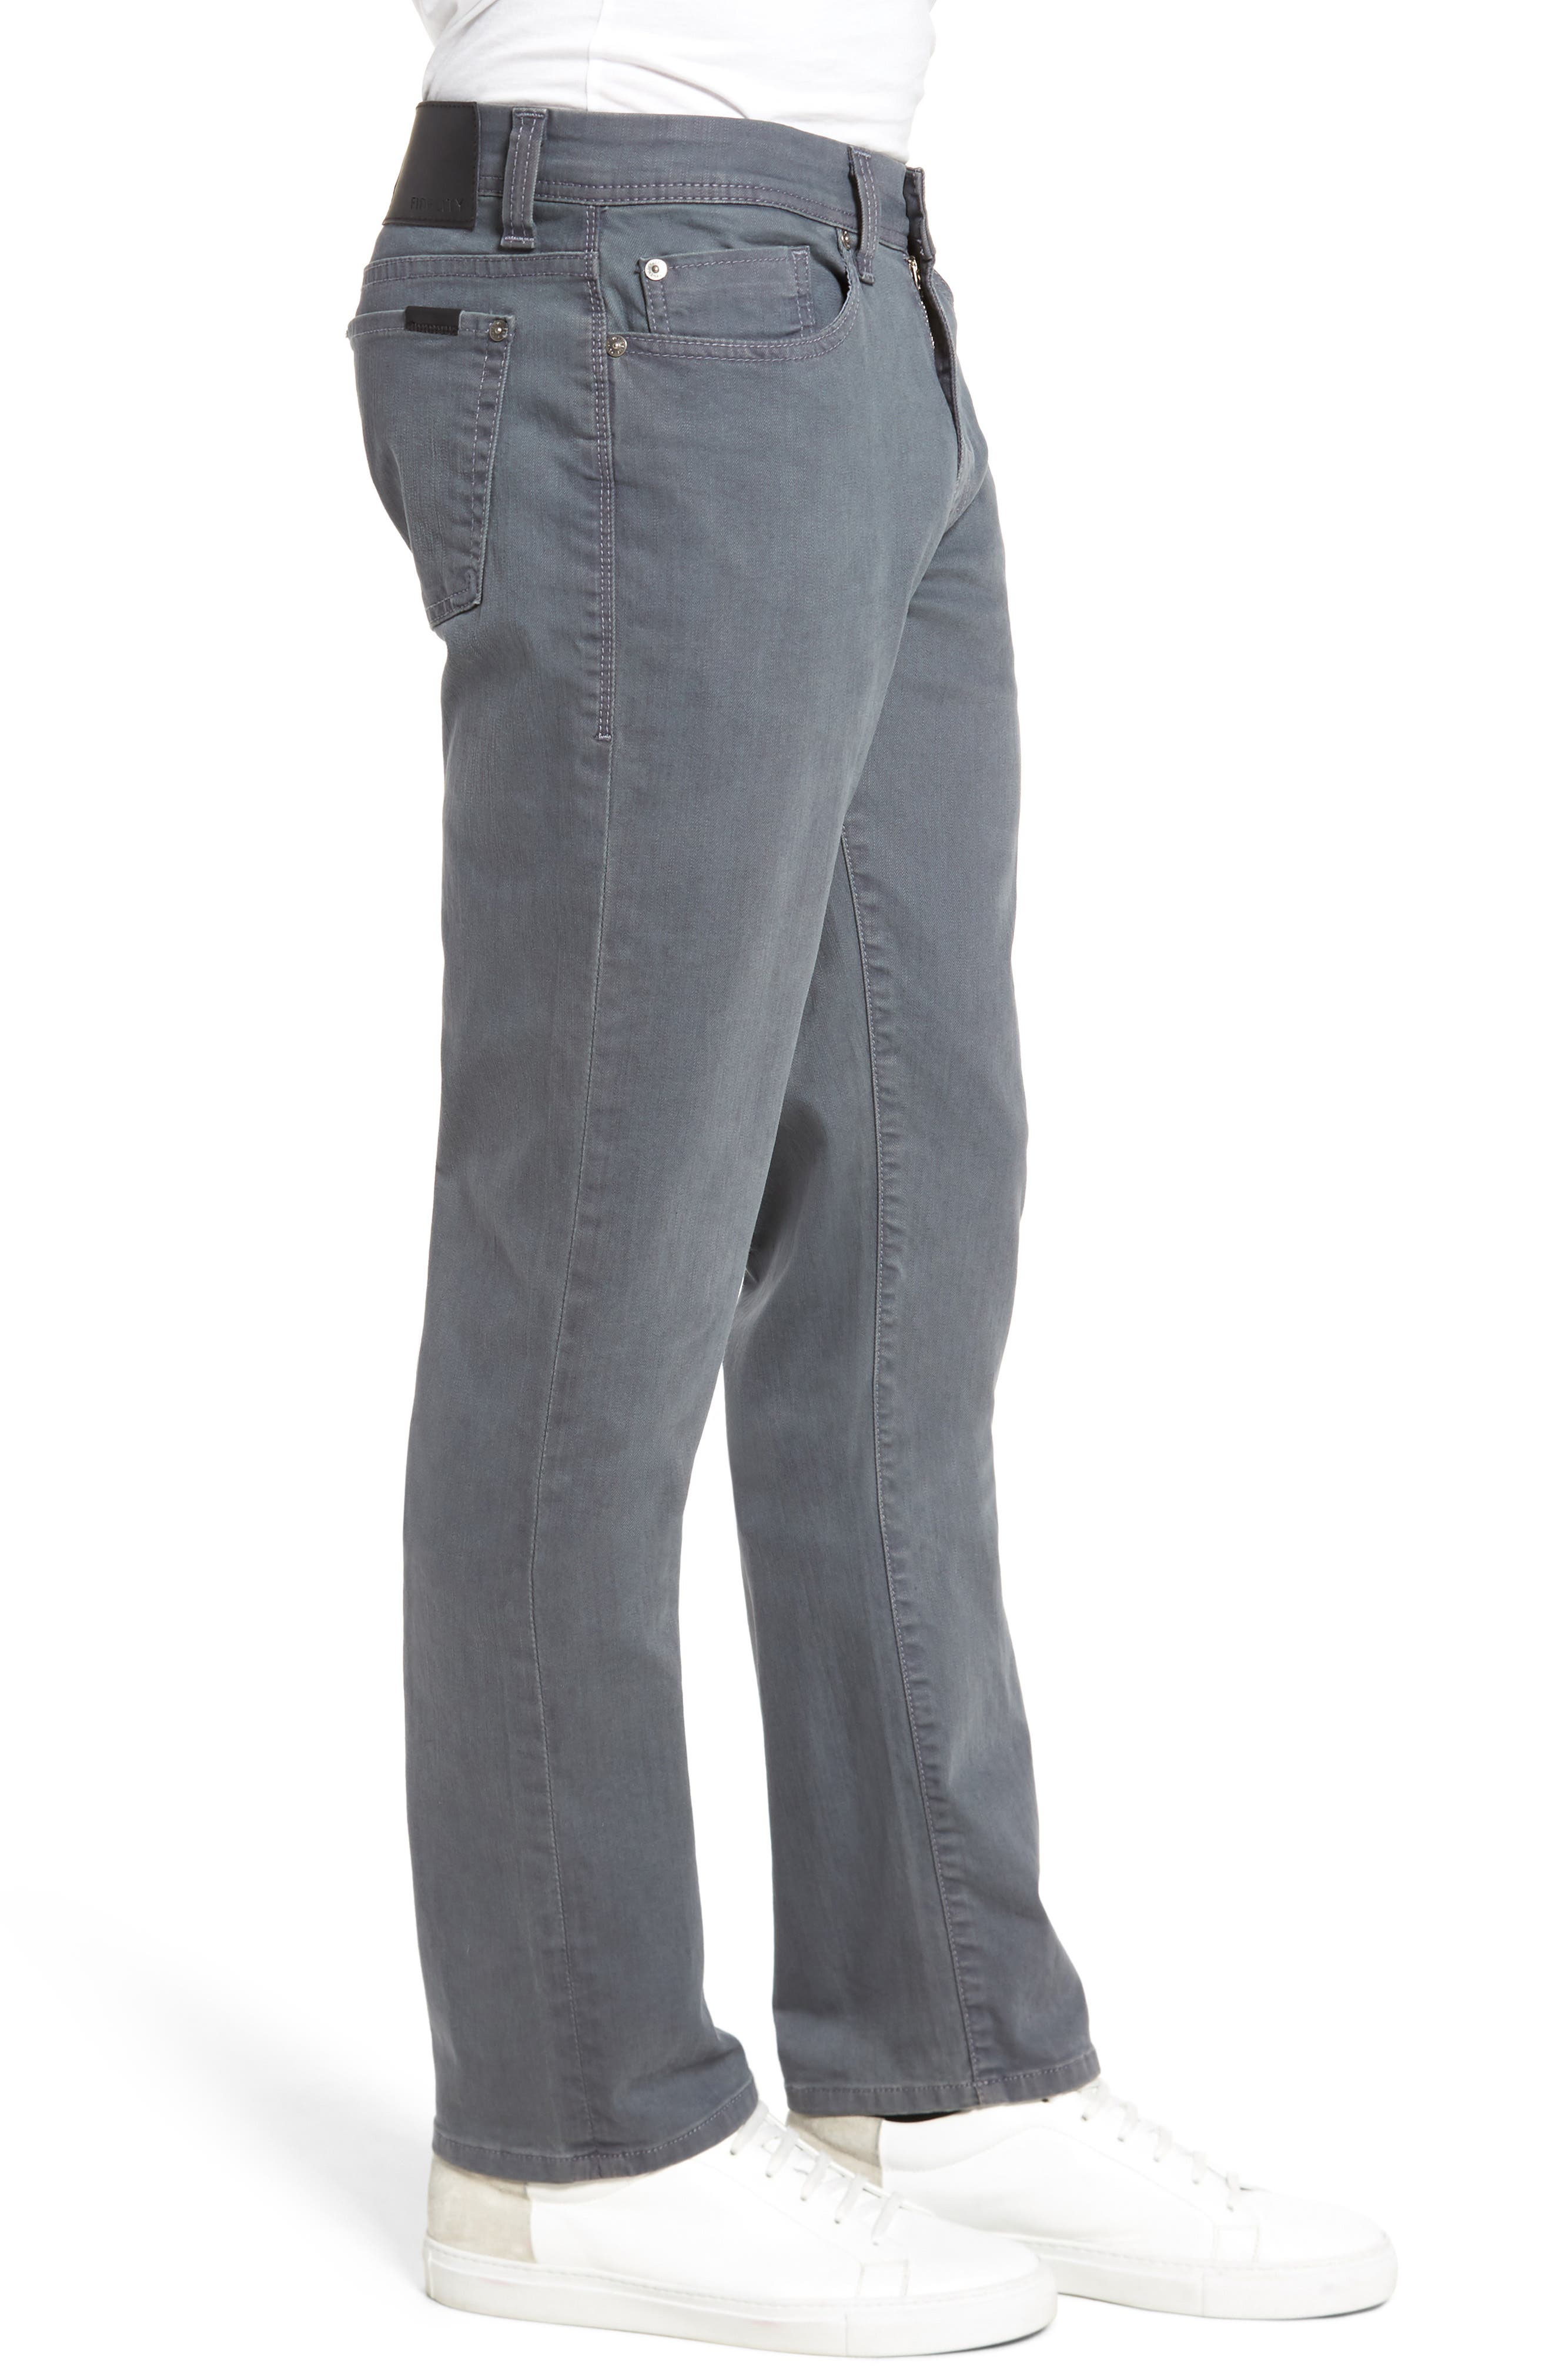 Jimmy Slim Straight Fit Jeans,                             Alternate thumbnail 3, color,                             020